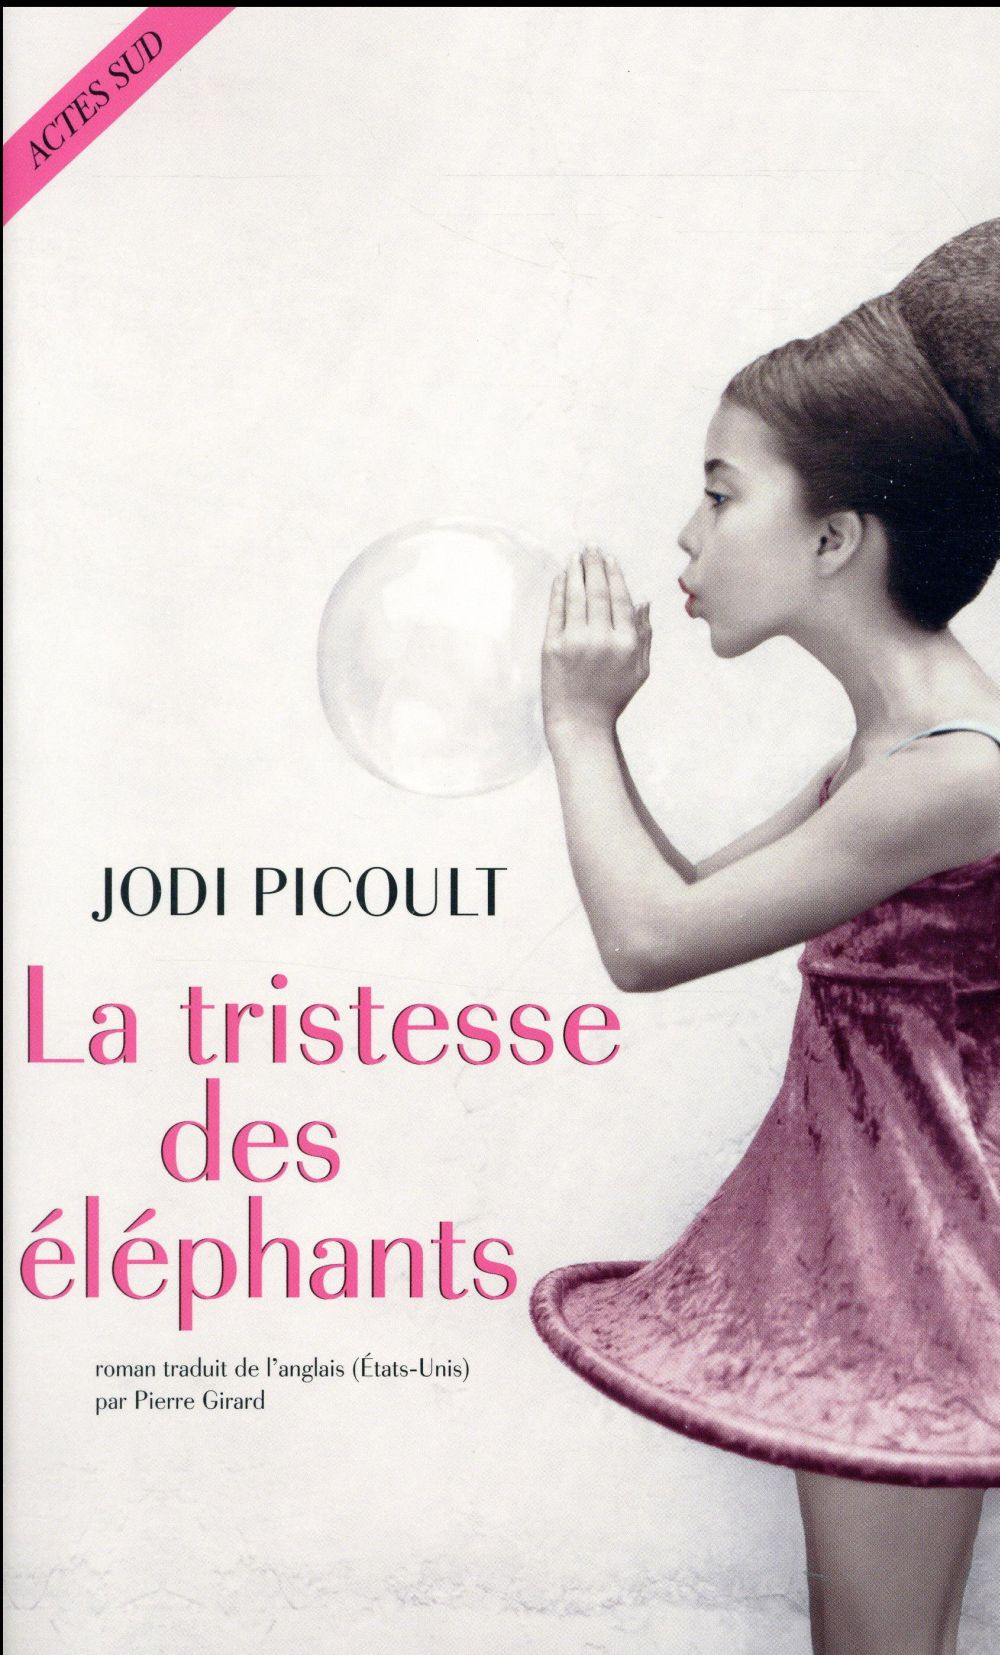 LA TRISTESSE DES ELEPHANTS